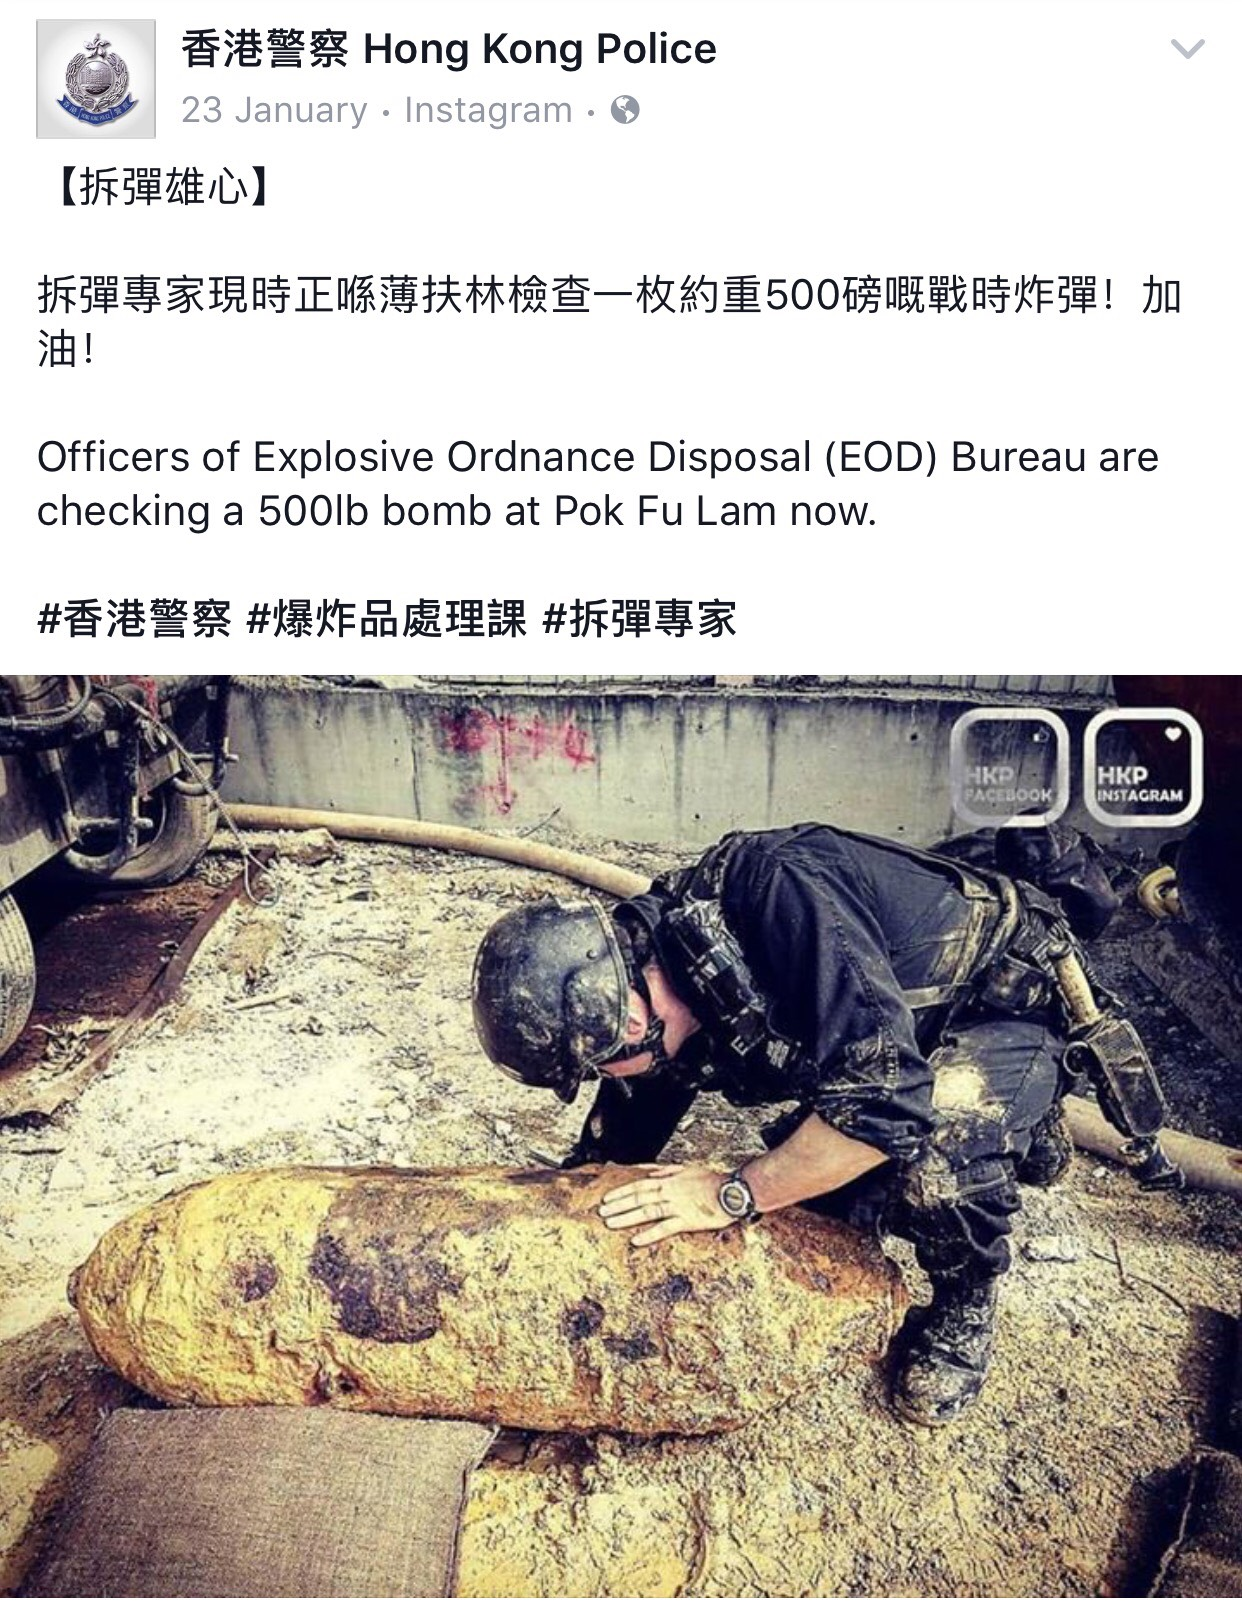 Officers of Explosive Ordnance Disposal Bureau found a 500 lb bomb in Pok Fu Lam.  The police posted an exclusive photo on its social media platforms straight away.